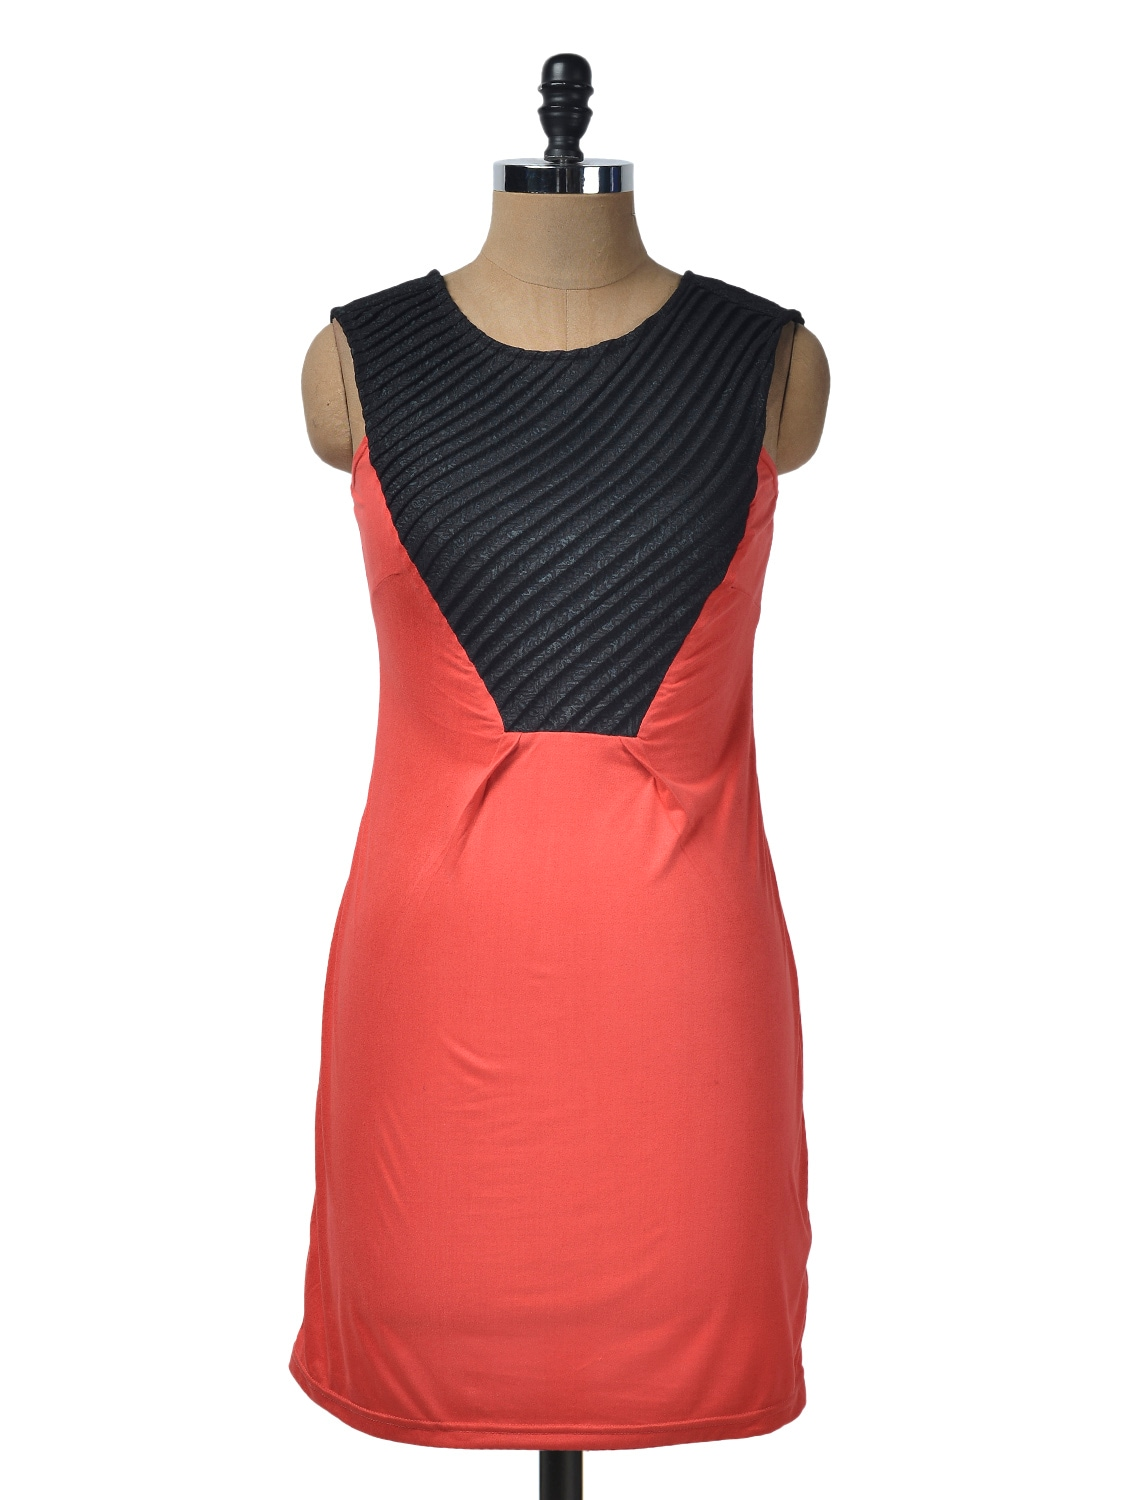 Black And Red Viscose Knit Dress - Glam And Luxe